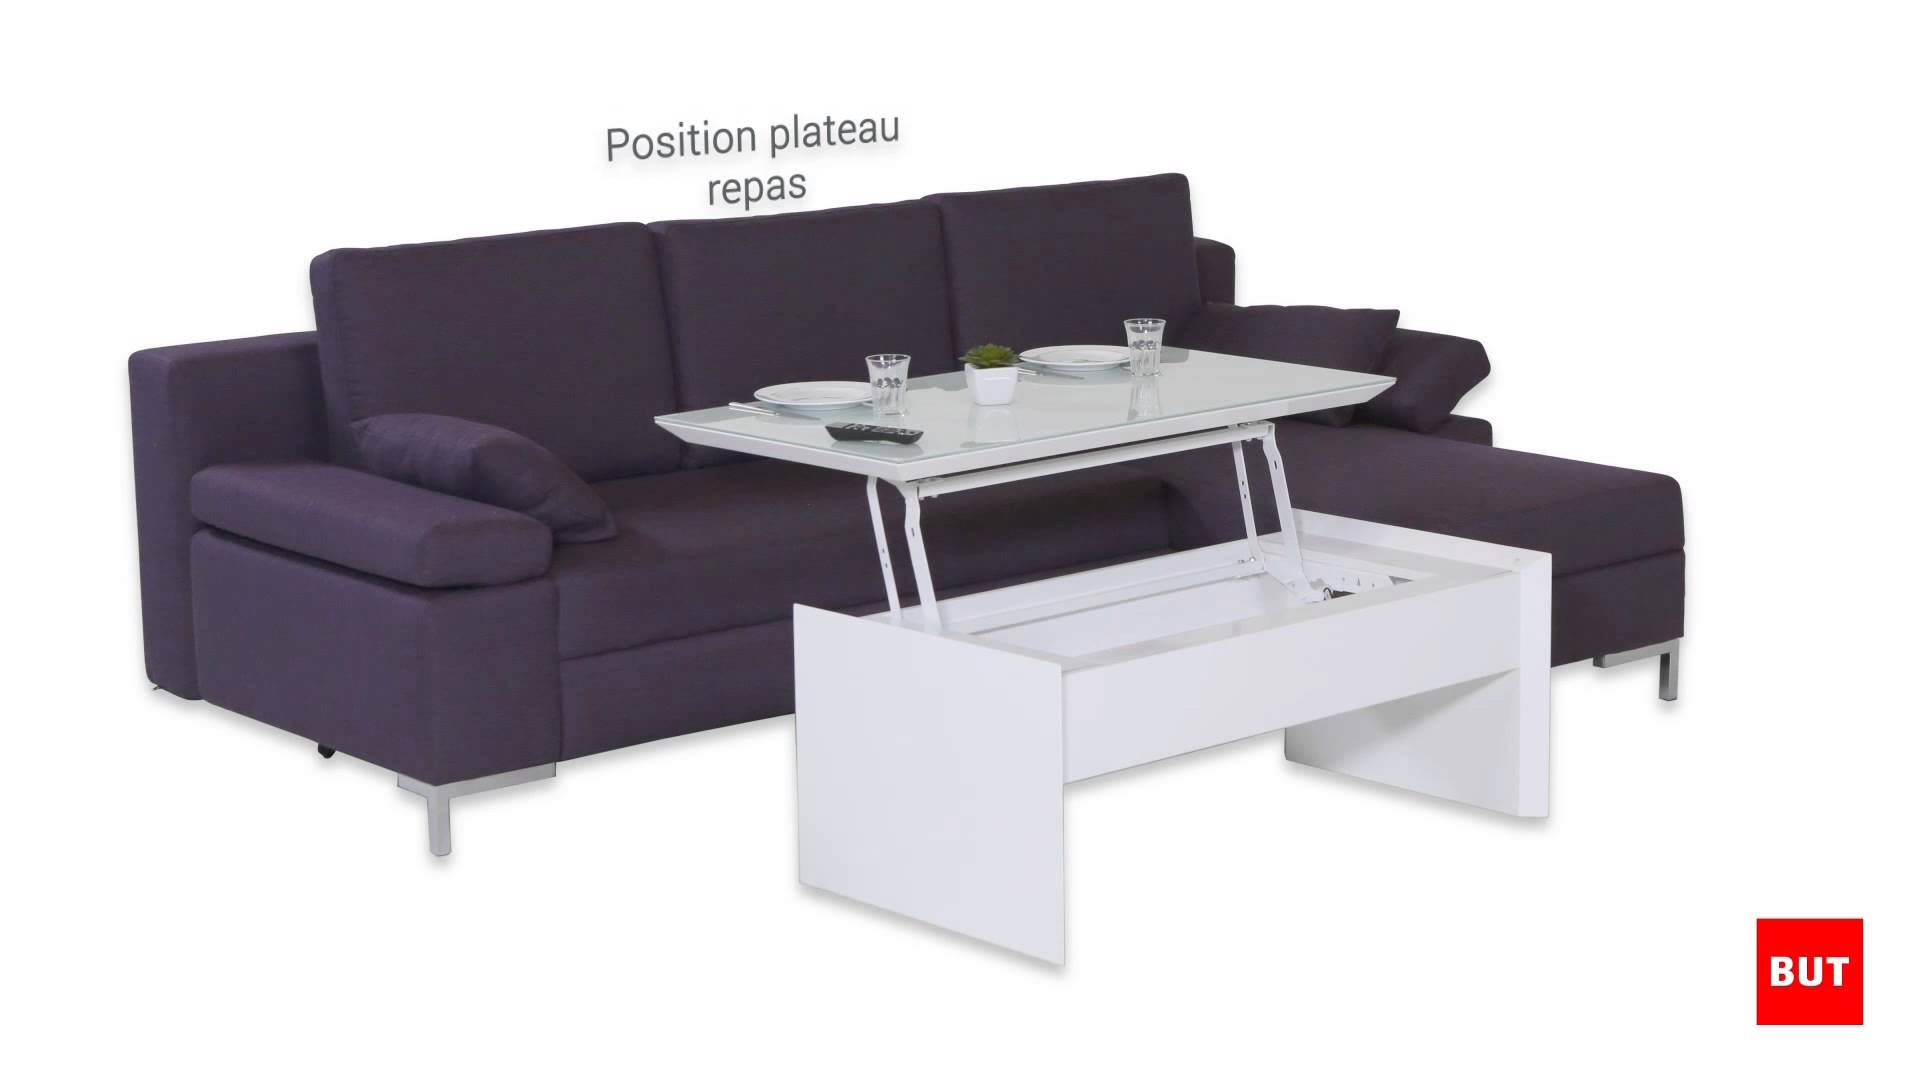 table basse relevable avec rangement id es de d coration int rieure french decor. Black Bedroom Furniture Sets. Home Design Ideas